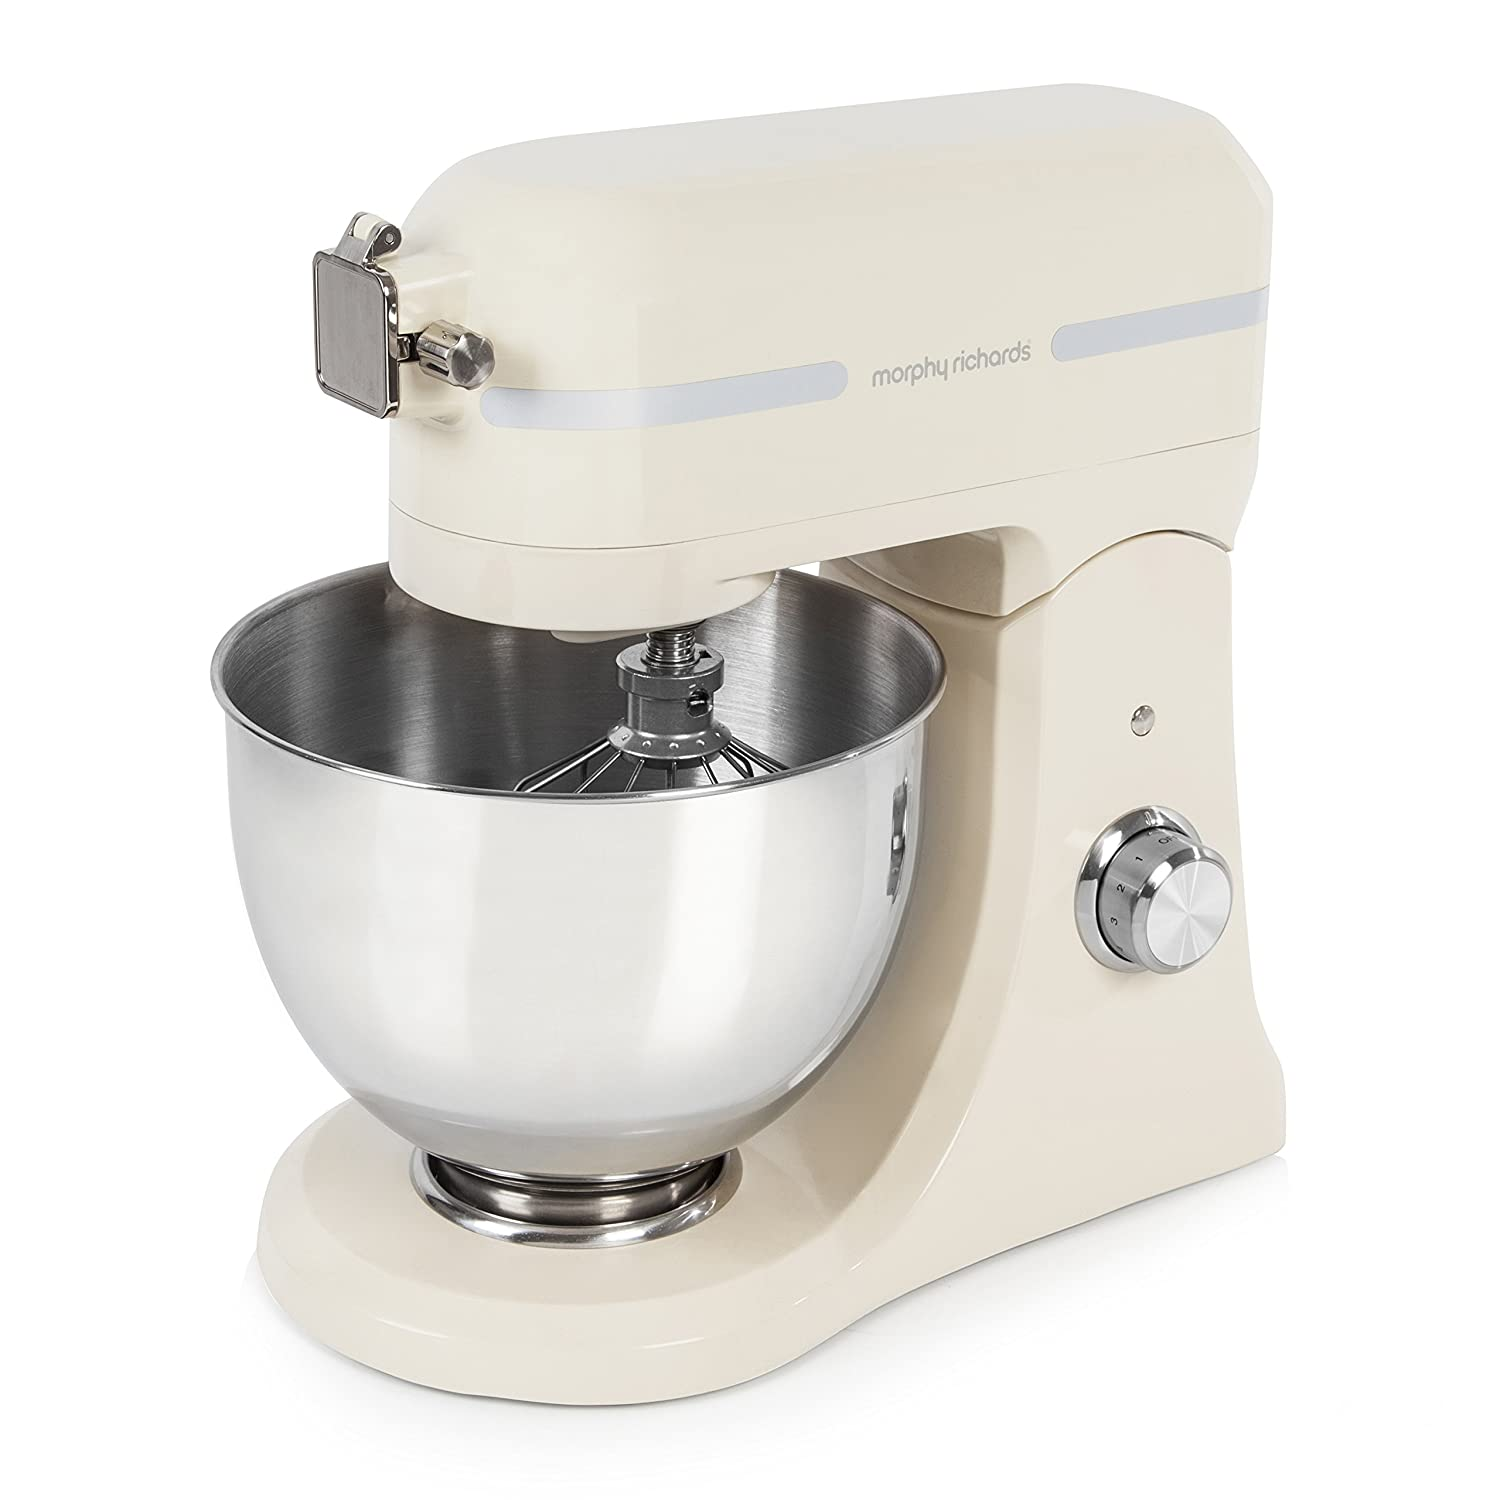 800 W Morphy Richards 400009 Professional Diecast Stand Mixer with Guard Cream